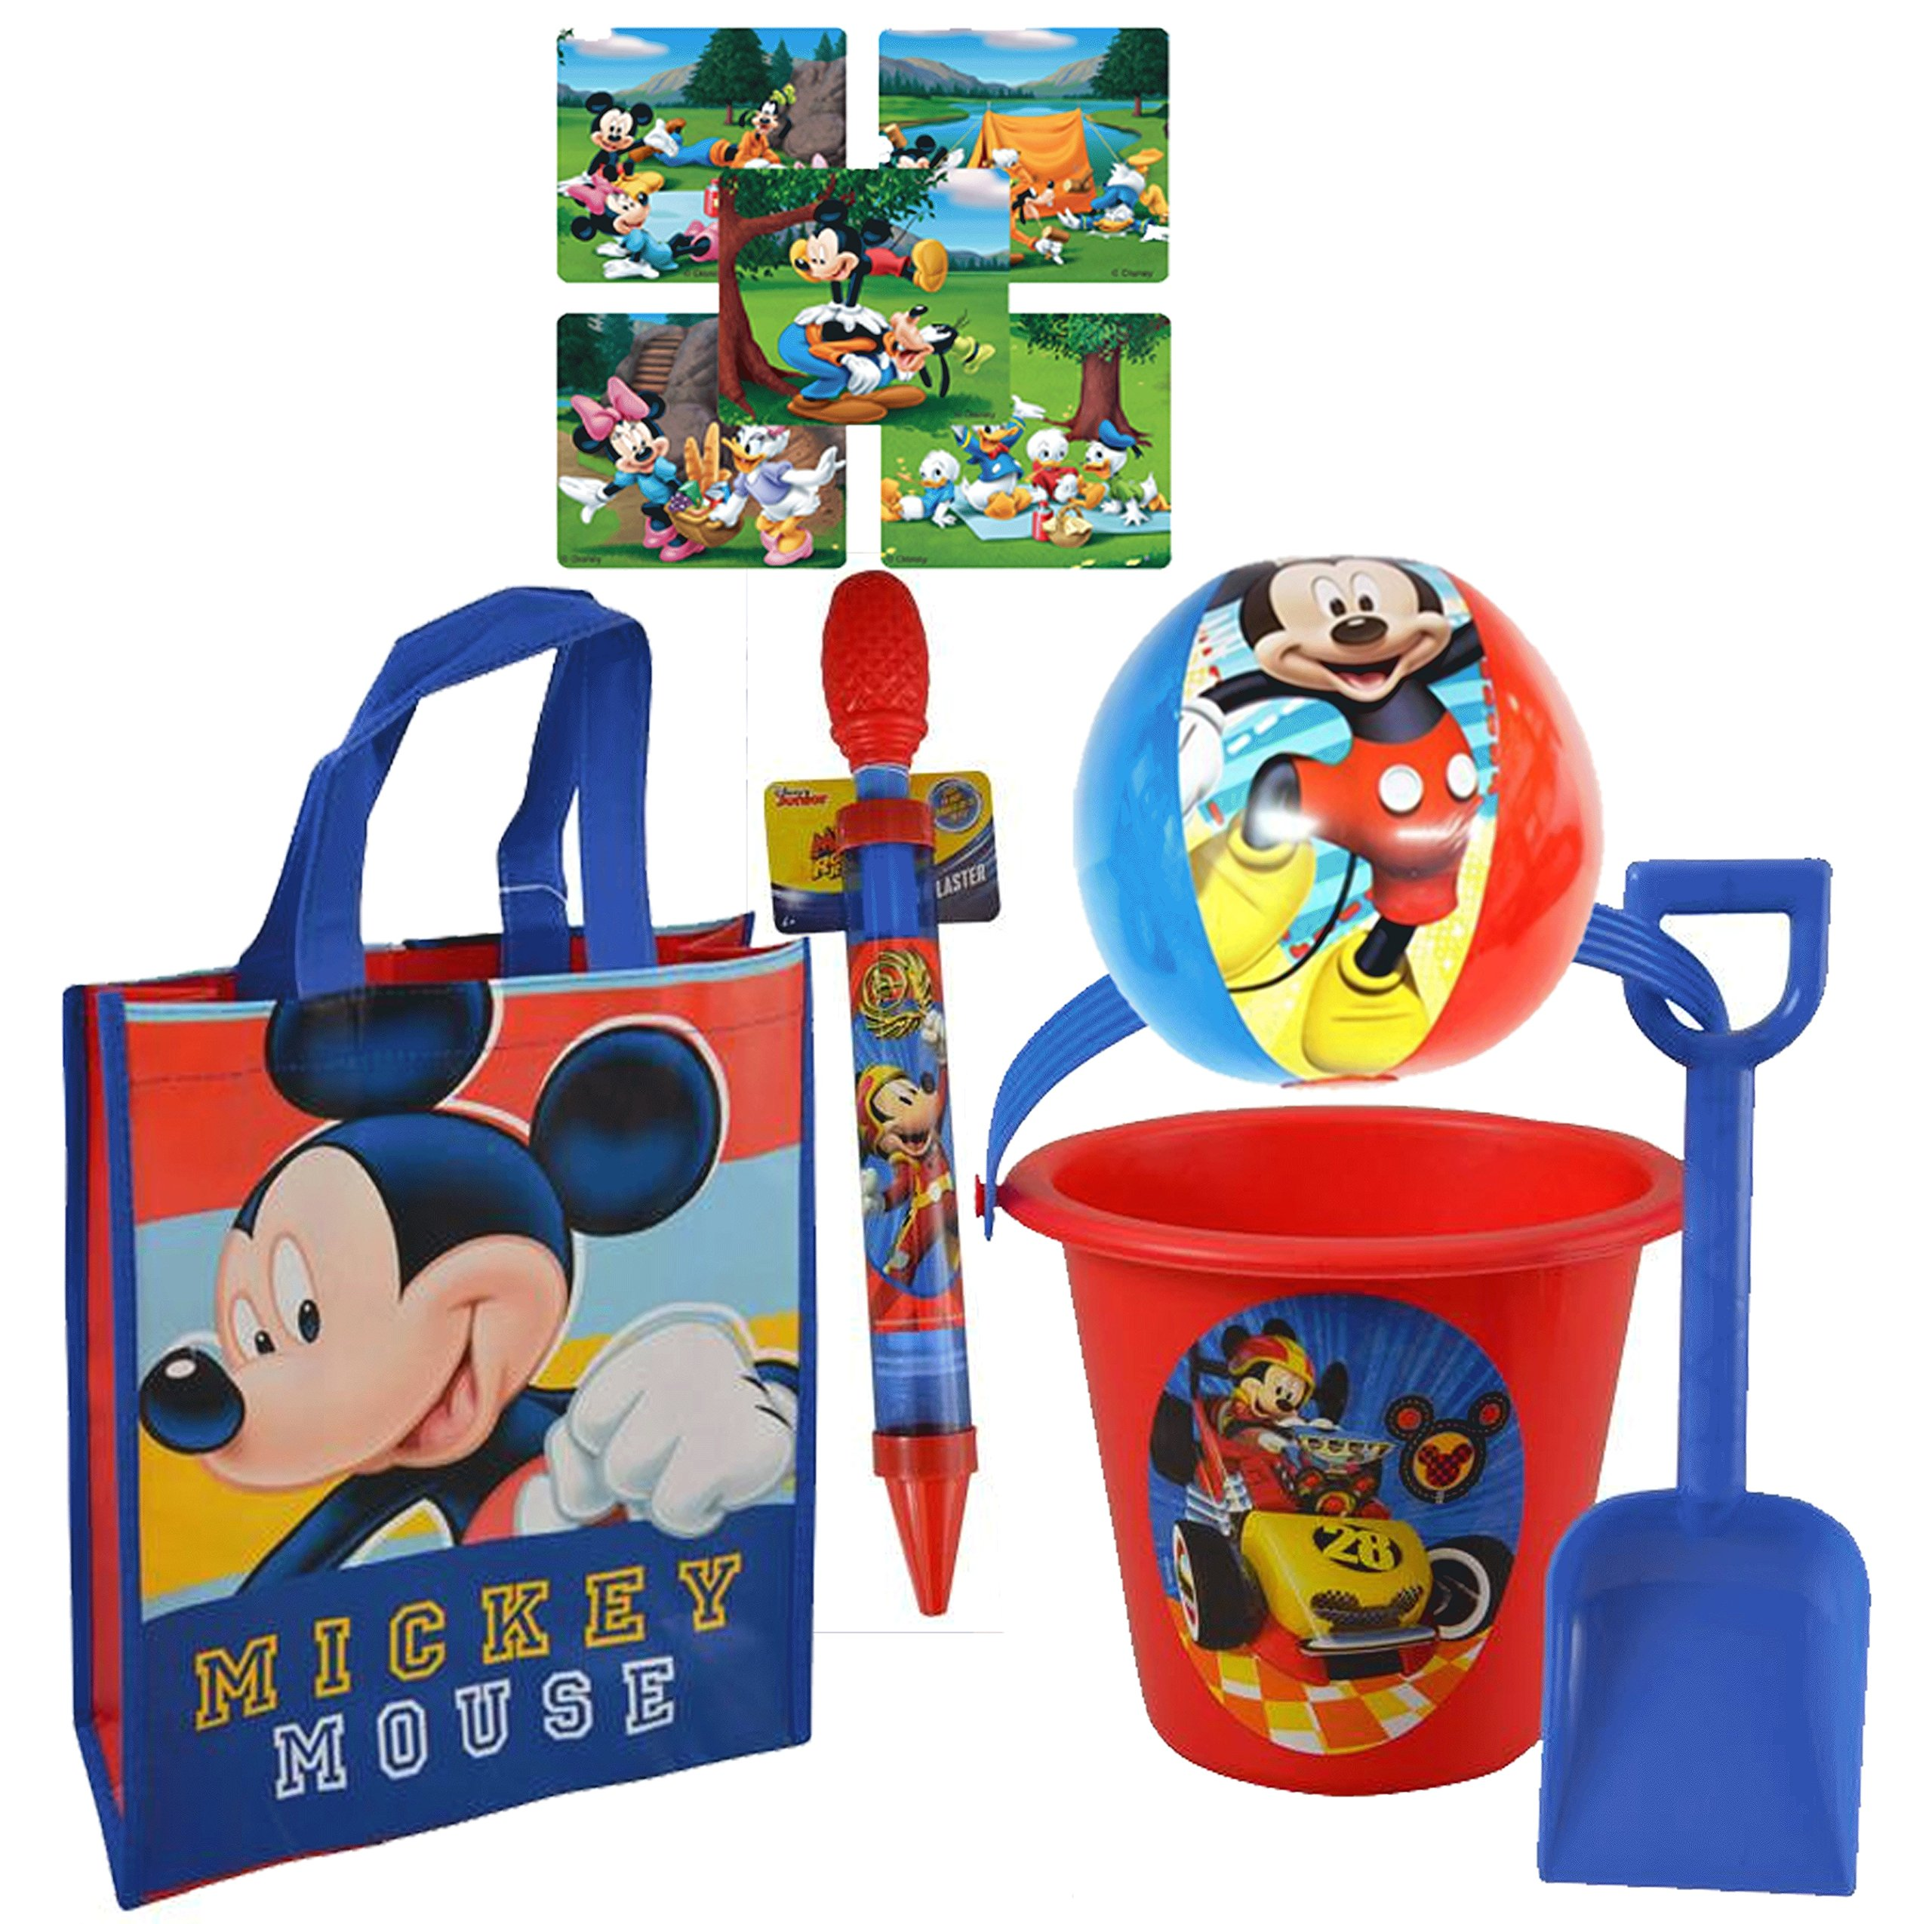 a9ecaba9703 Get Quotations · Mickey Mouse and the Roadster Racer 5pc Summer Bucket of  Fun! Includes Resuable Beach Tote